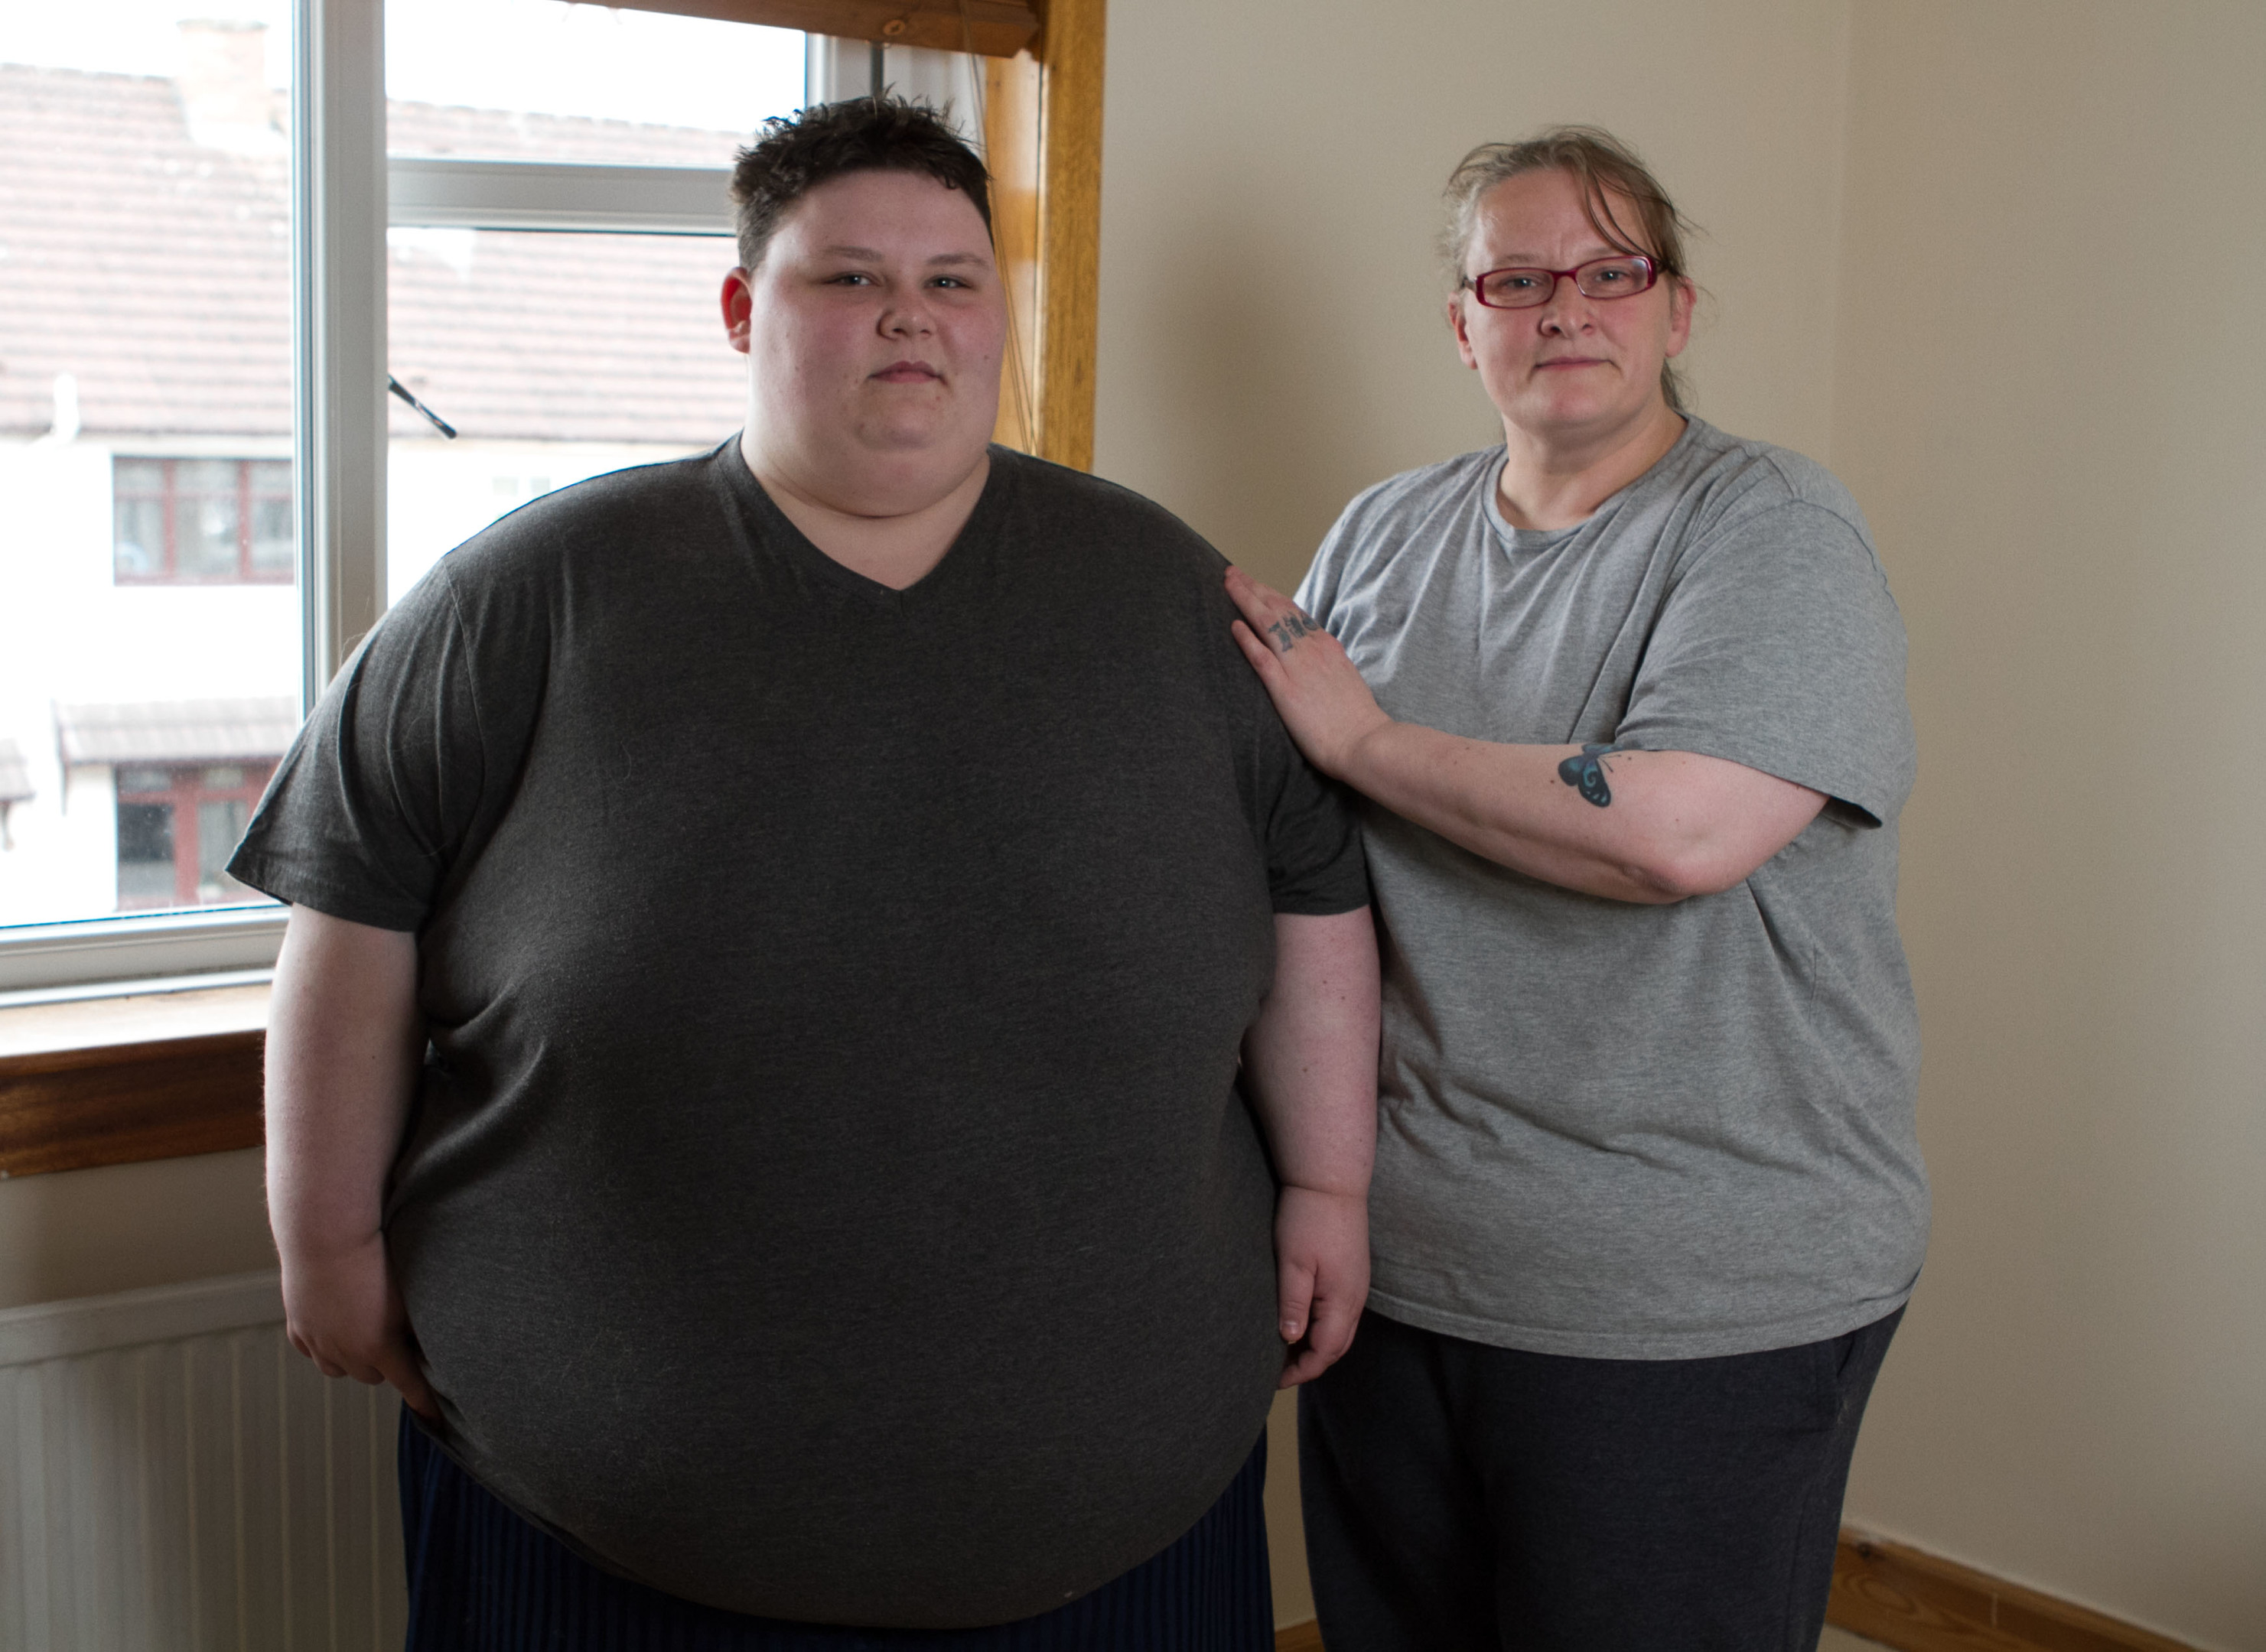 Amy Johnston obesity crisis is draining the nhs - sunday post